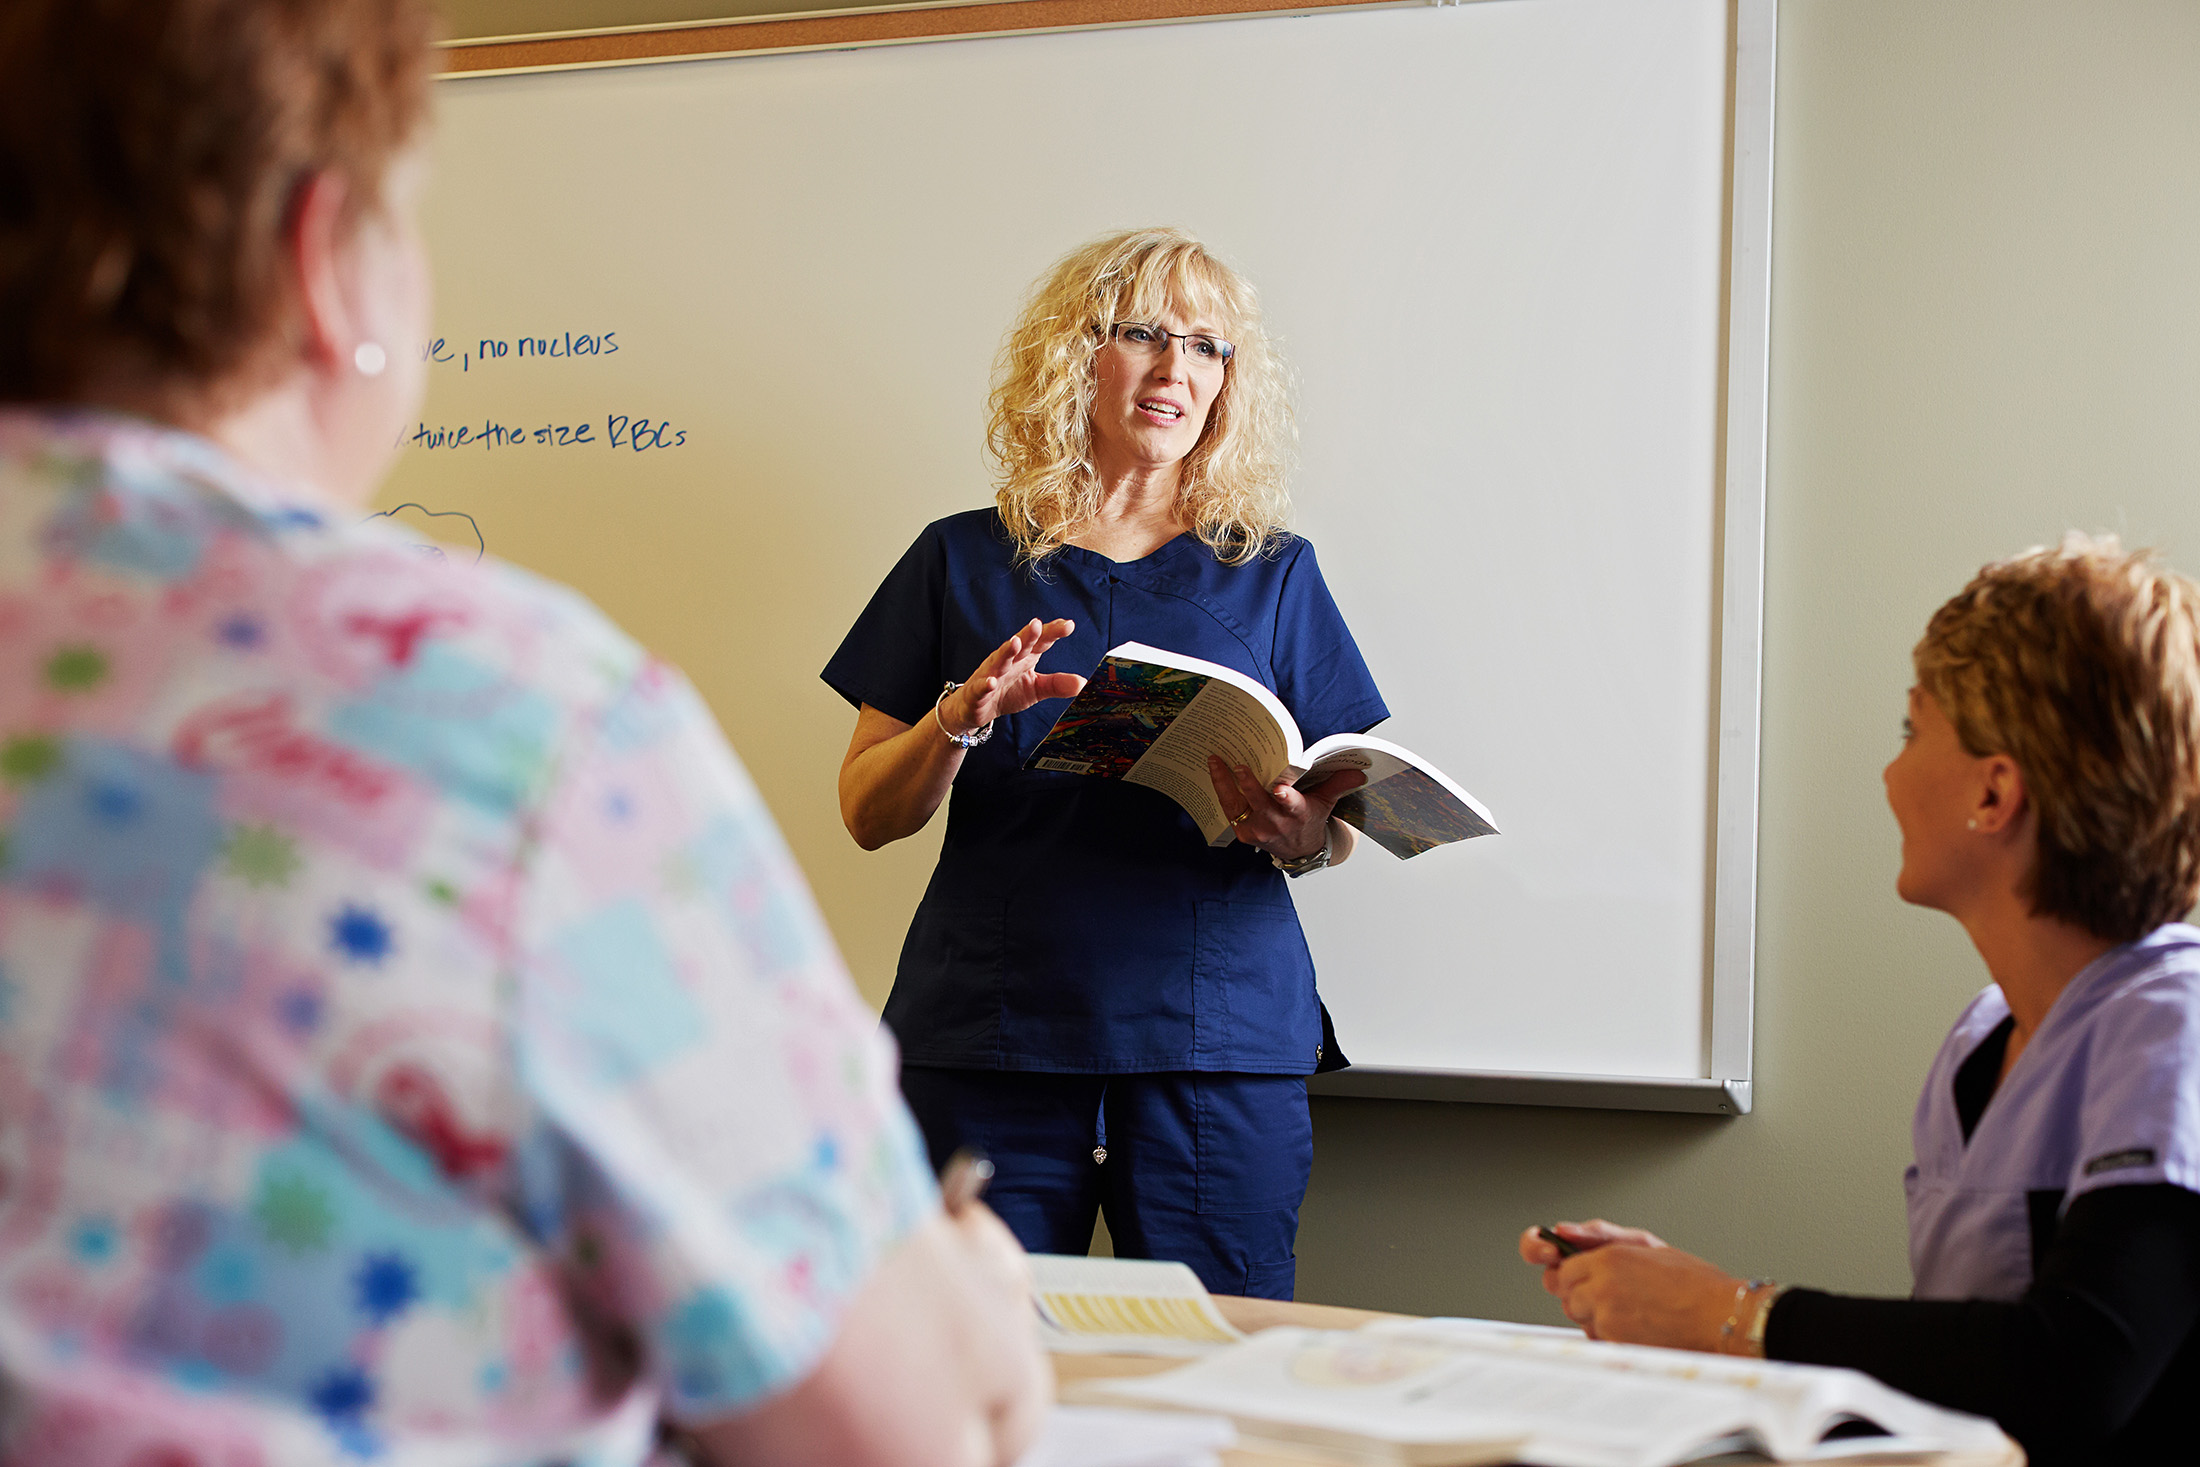 An instructor at Granite State College in Concord, N.H. talks to students in class. If trustees' plans are approved, tuition at the school will go four years without increasing. Courtesy of the University System of New Hampshire.